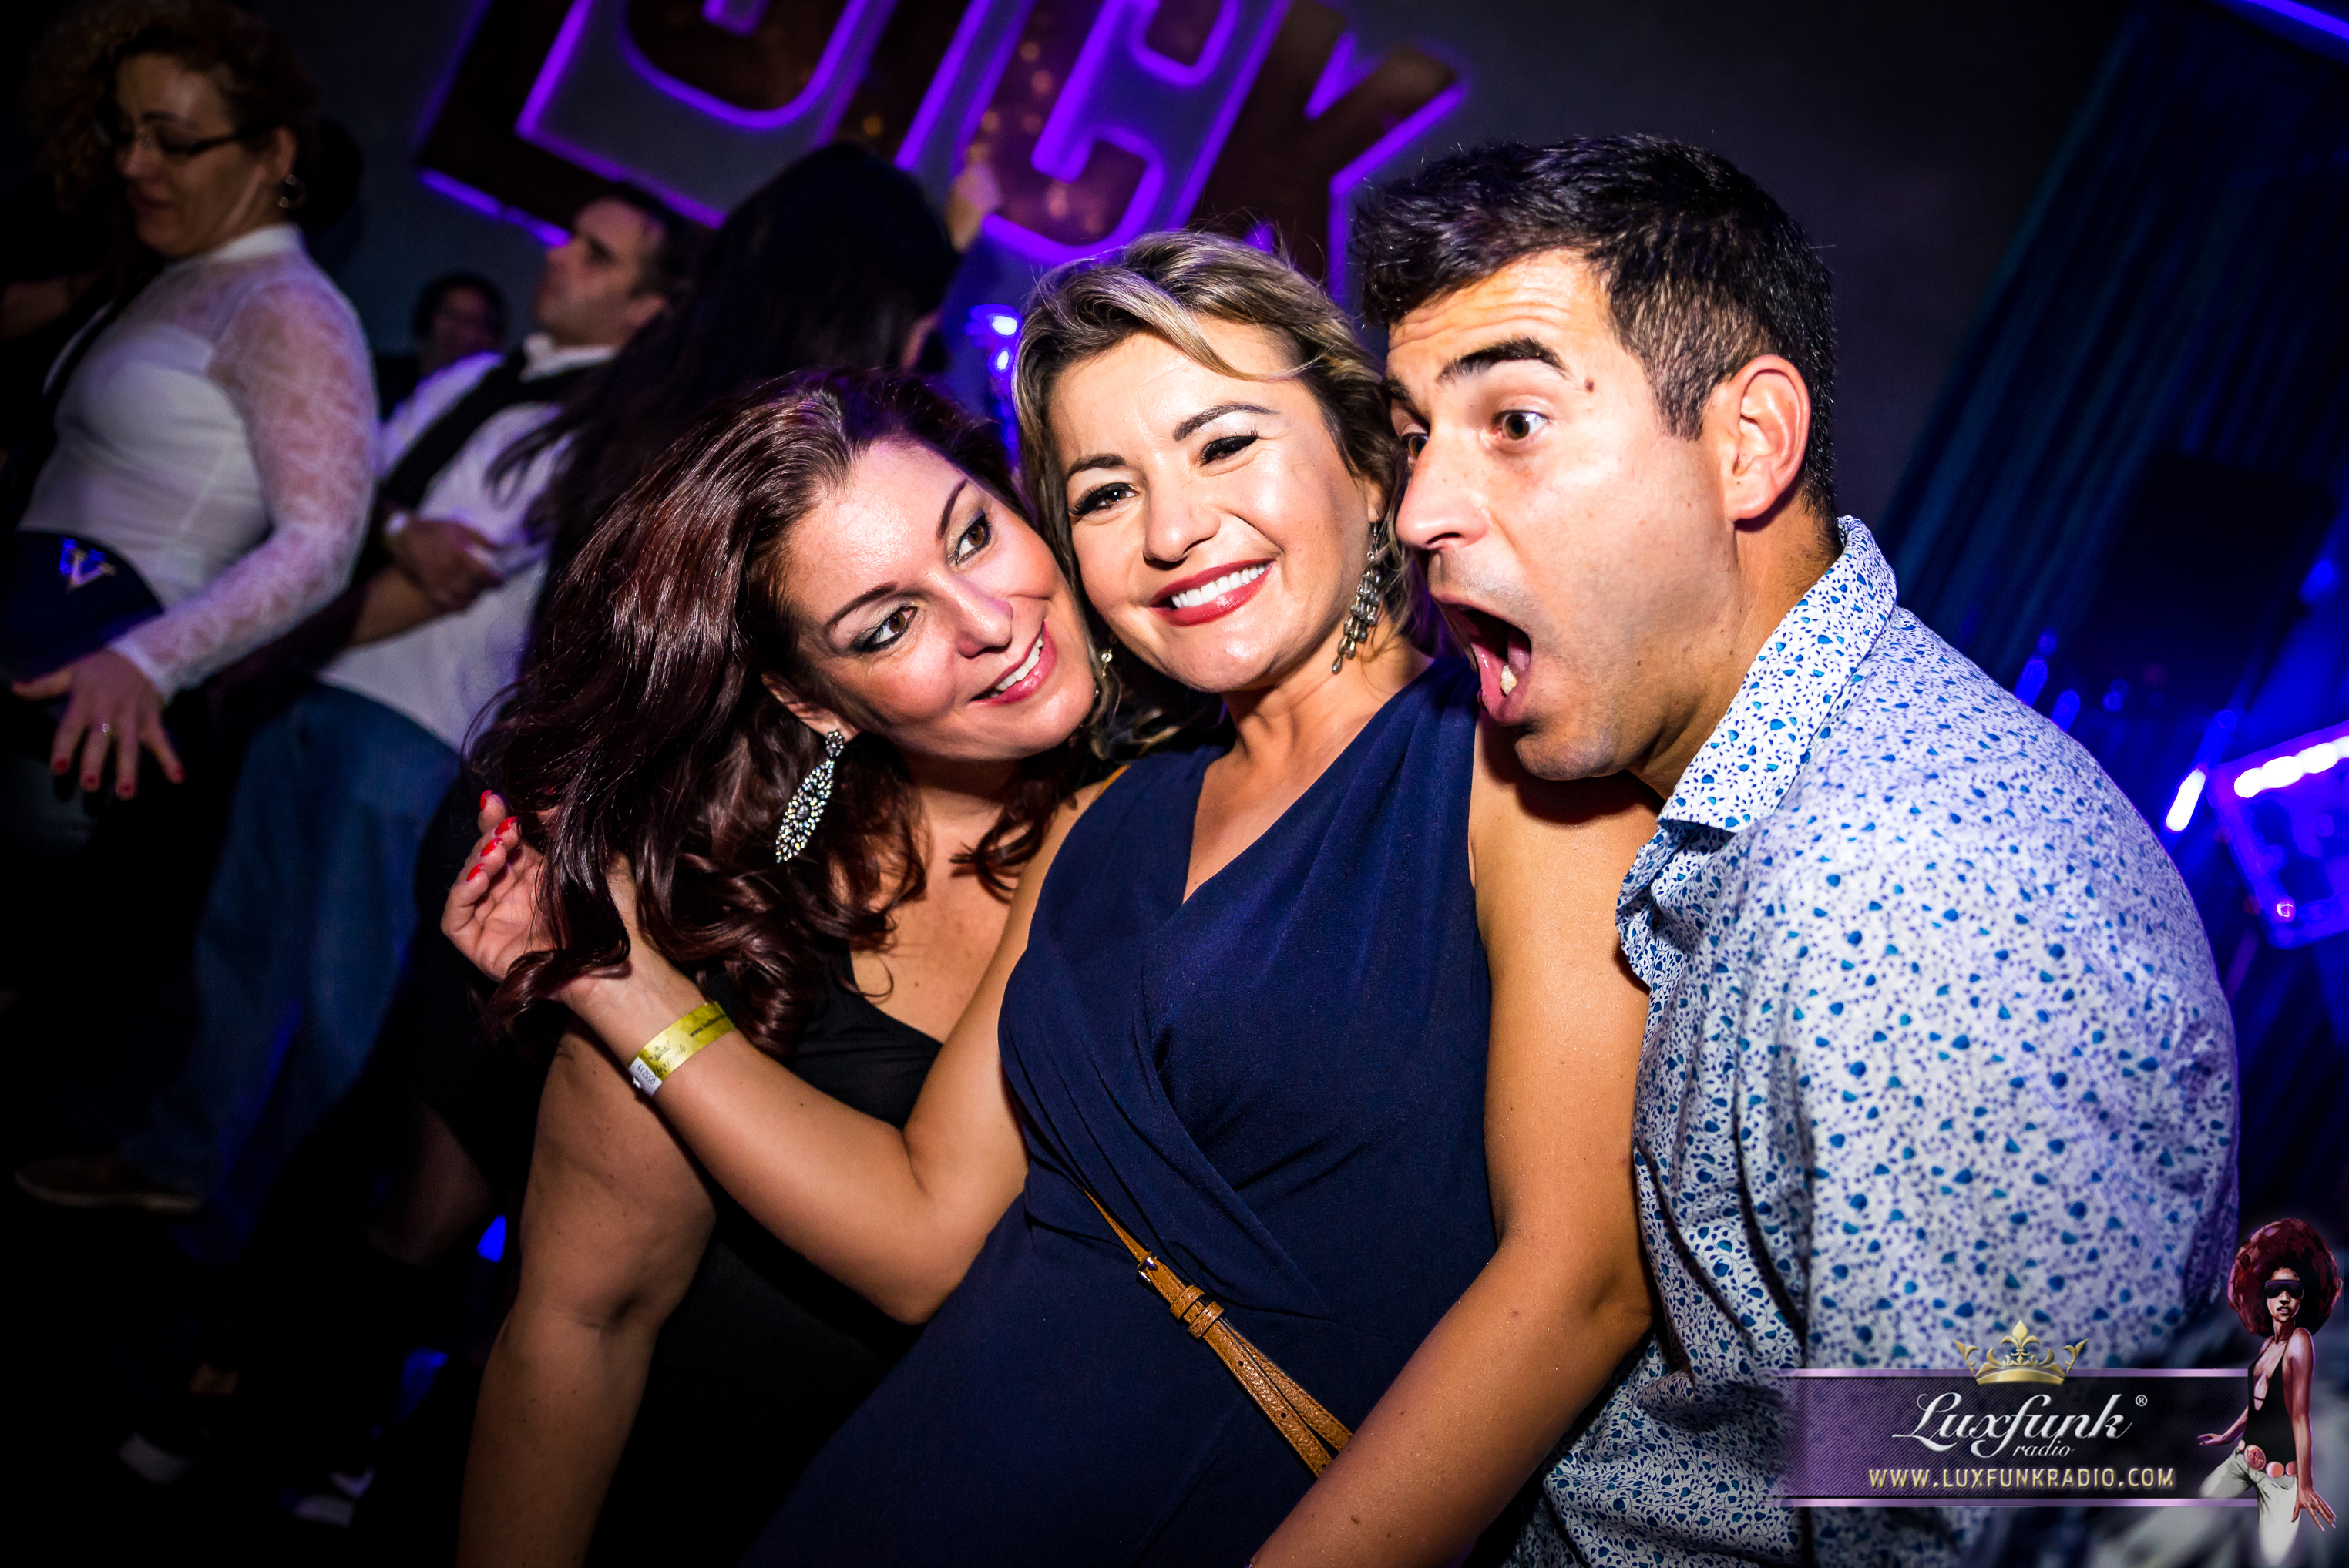 luxfunk-radio-funky-party-20191108-lock-budapest-1319